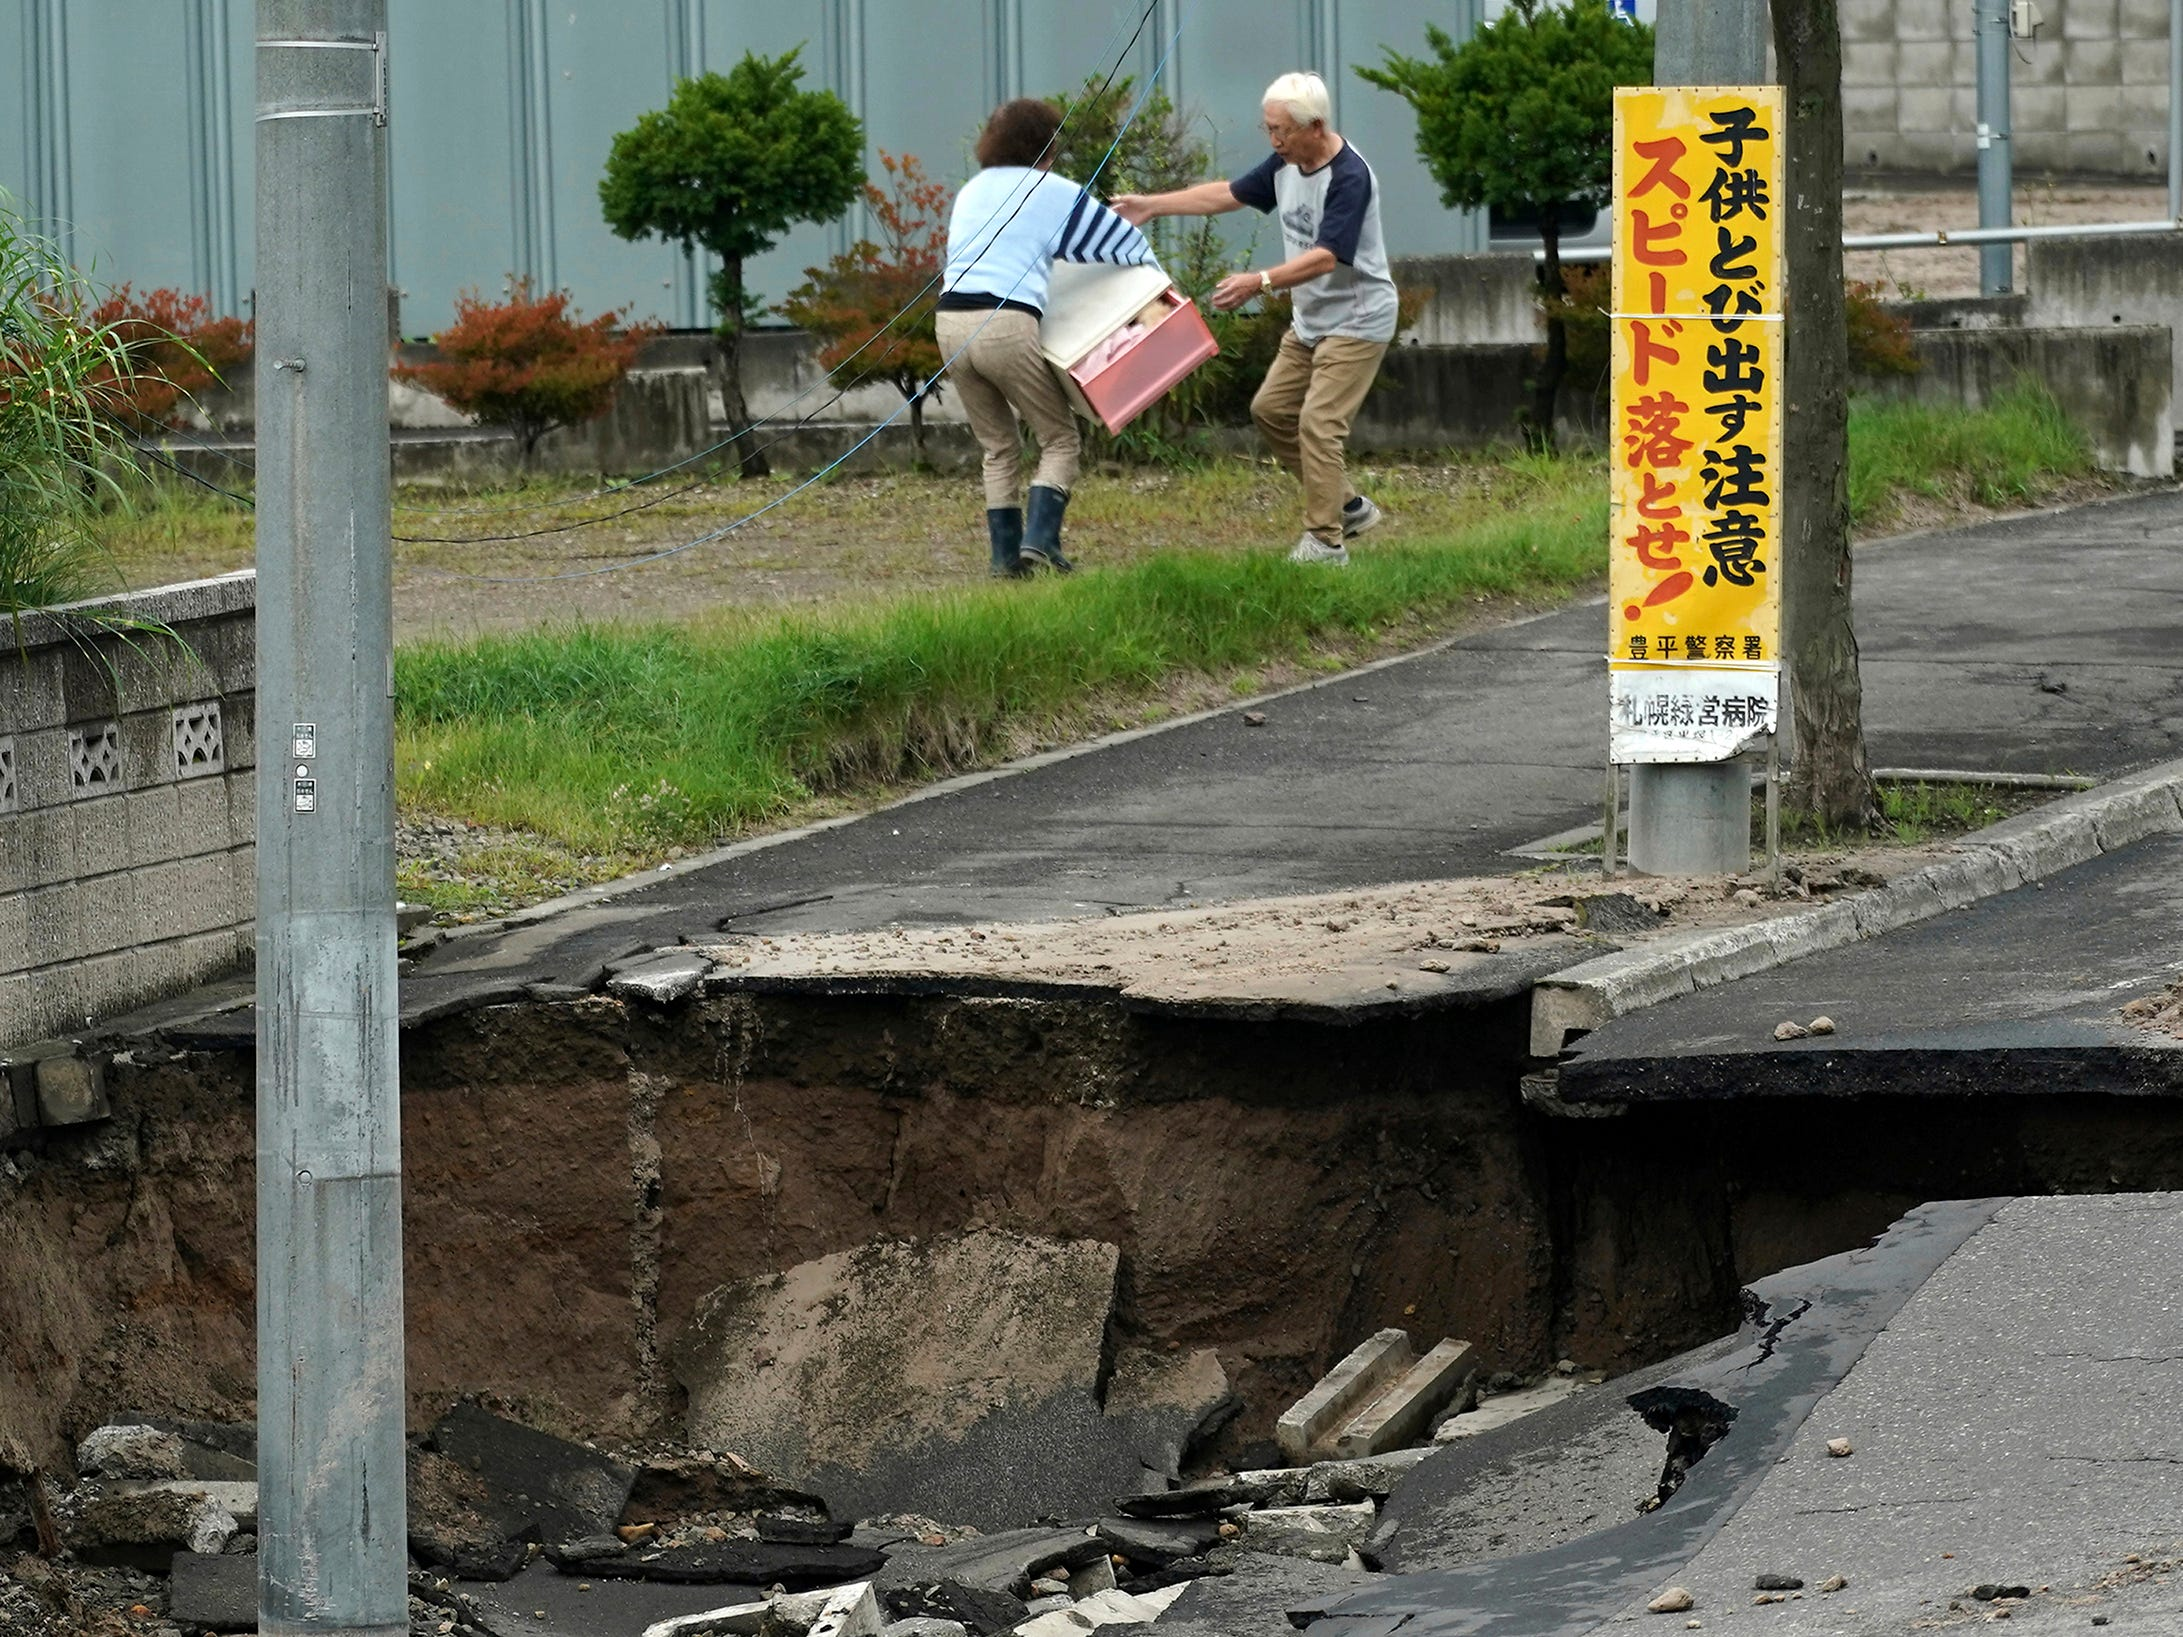 Residents bring out their belongings from an earthquake-damaged house in Kiyota ward of Sapporo, Hokkaido, northern Japan, Saturday.  Some parts of the city were severely damaged, with houses atilt and roads crumbled or sunken. A mudslide left several cars half buried, and the ground subsided in some areas, leaving drainpipes and manhole covers protruding by more than a meter (yard) in some places.